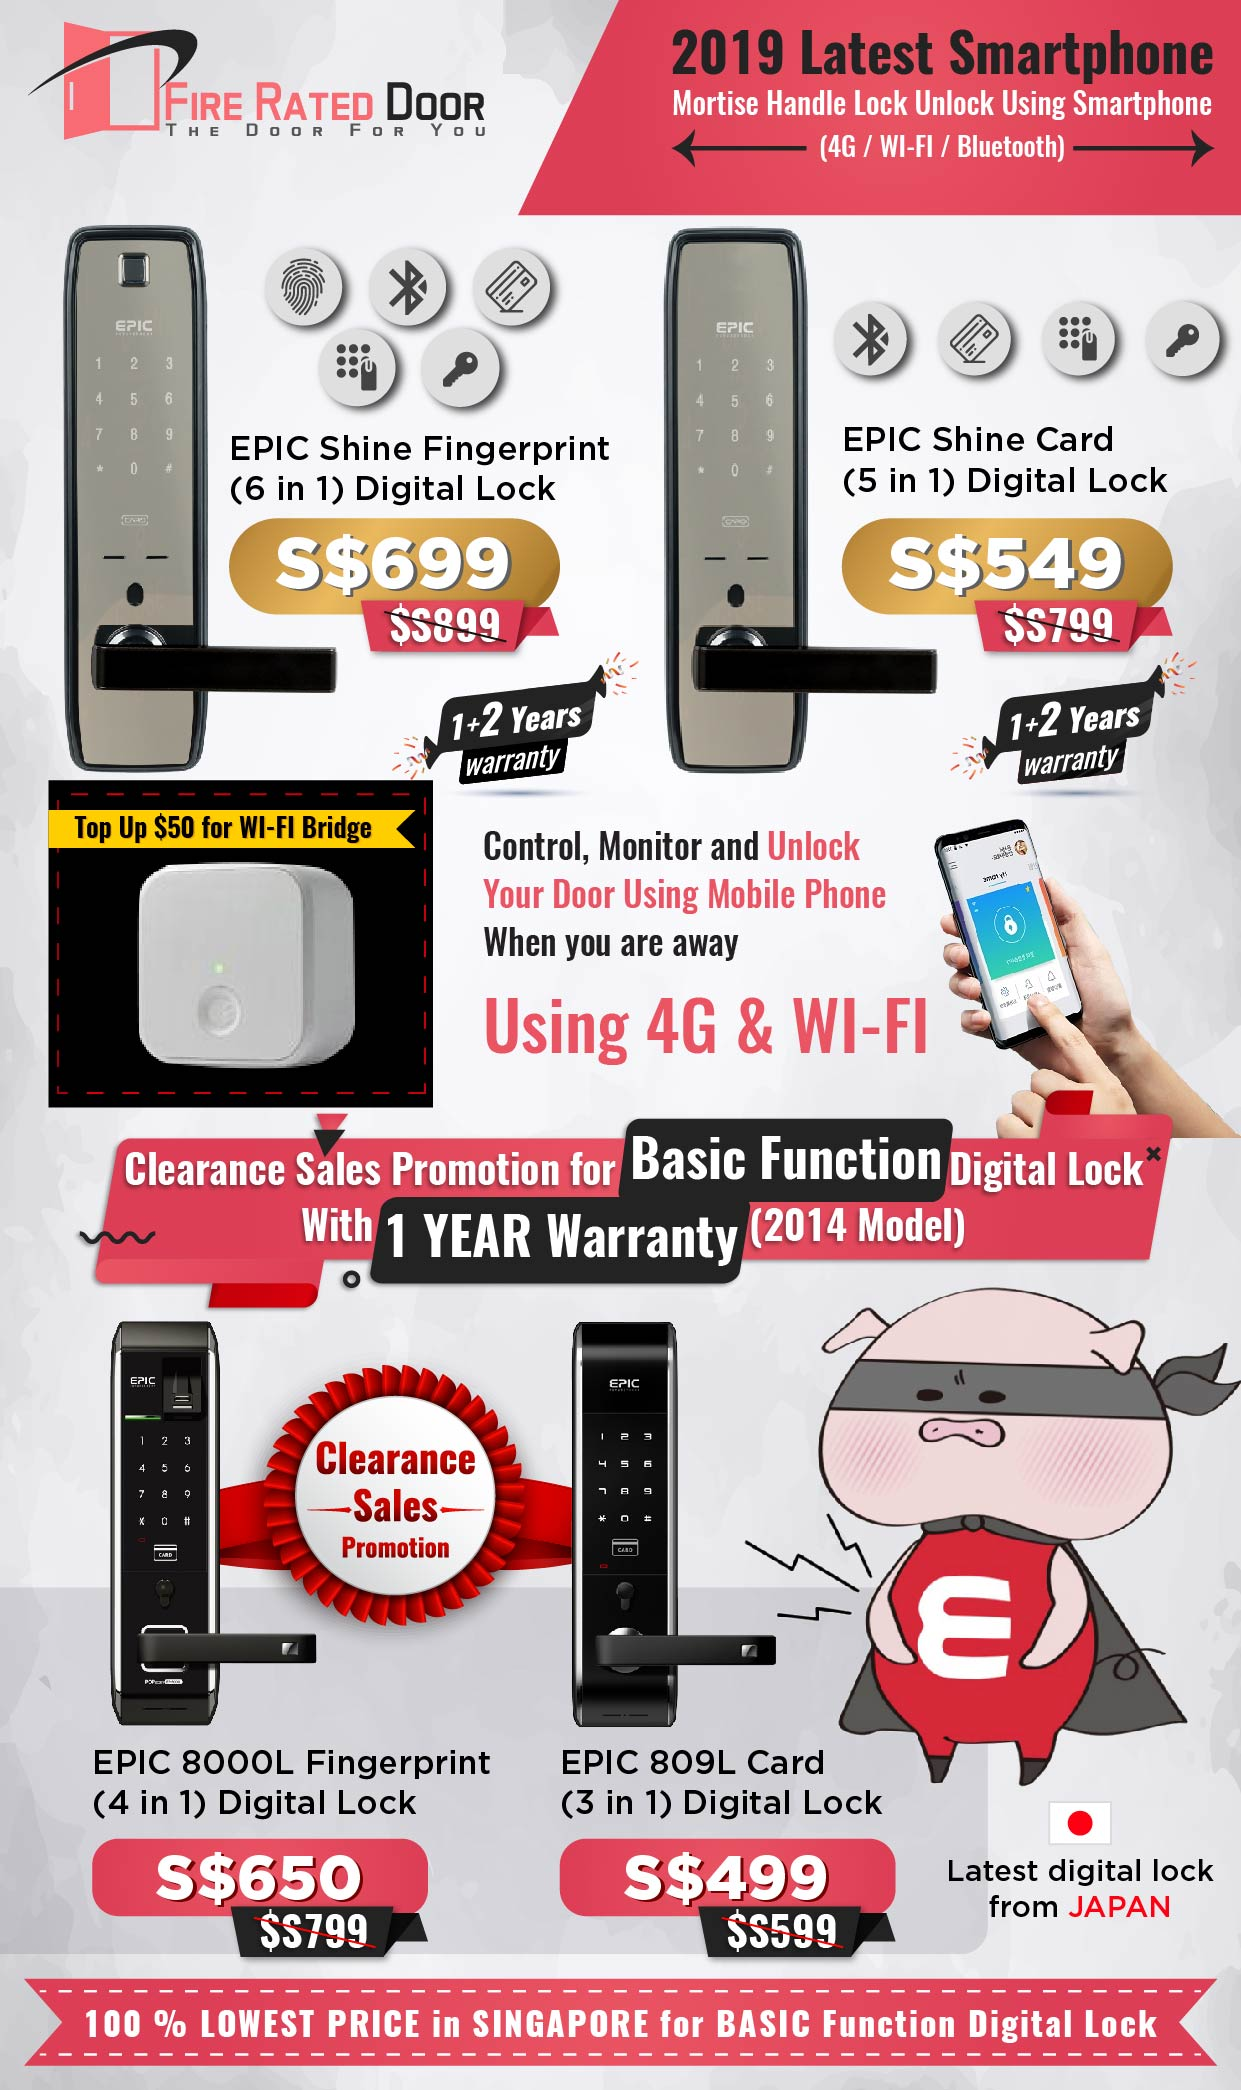 Mortise Handle Lock using Smartphone